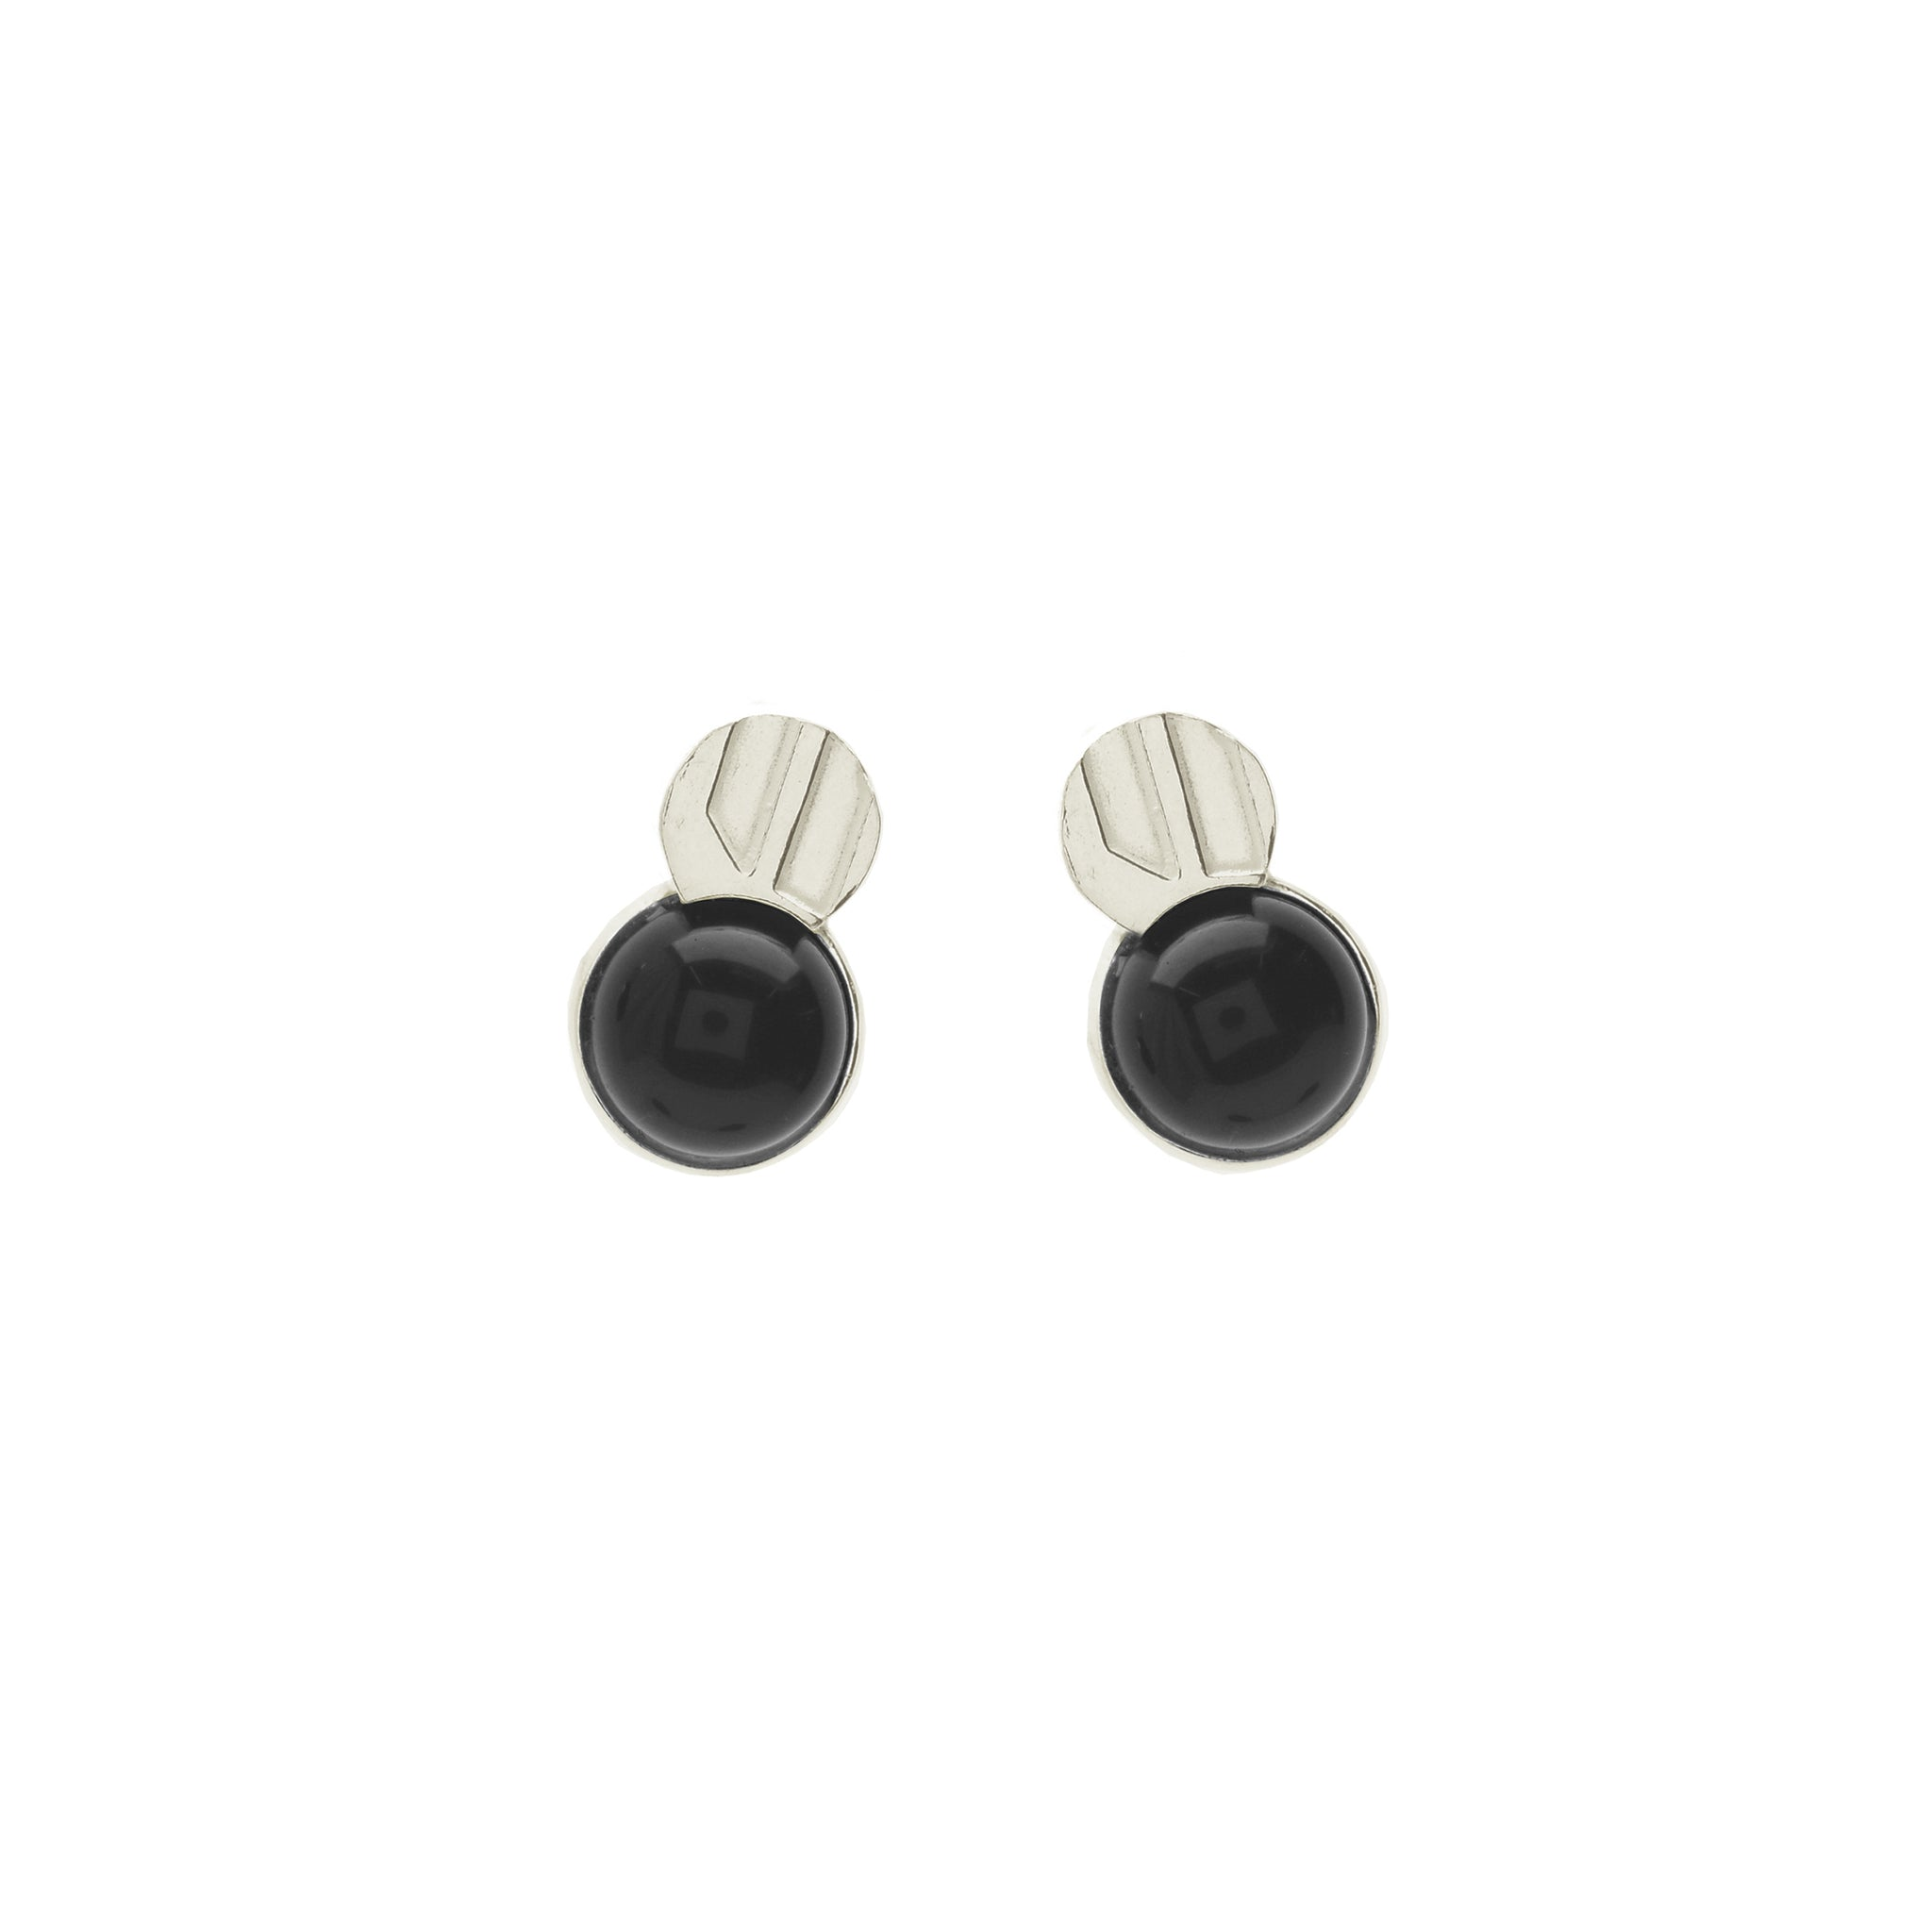 Fine Etched Stud Earrings with Onyx stone